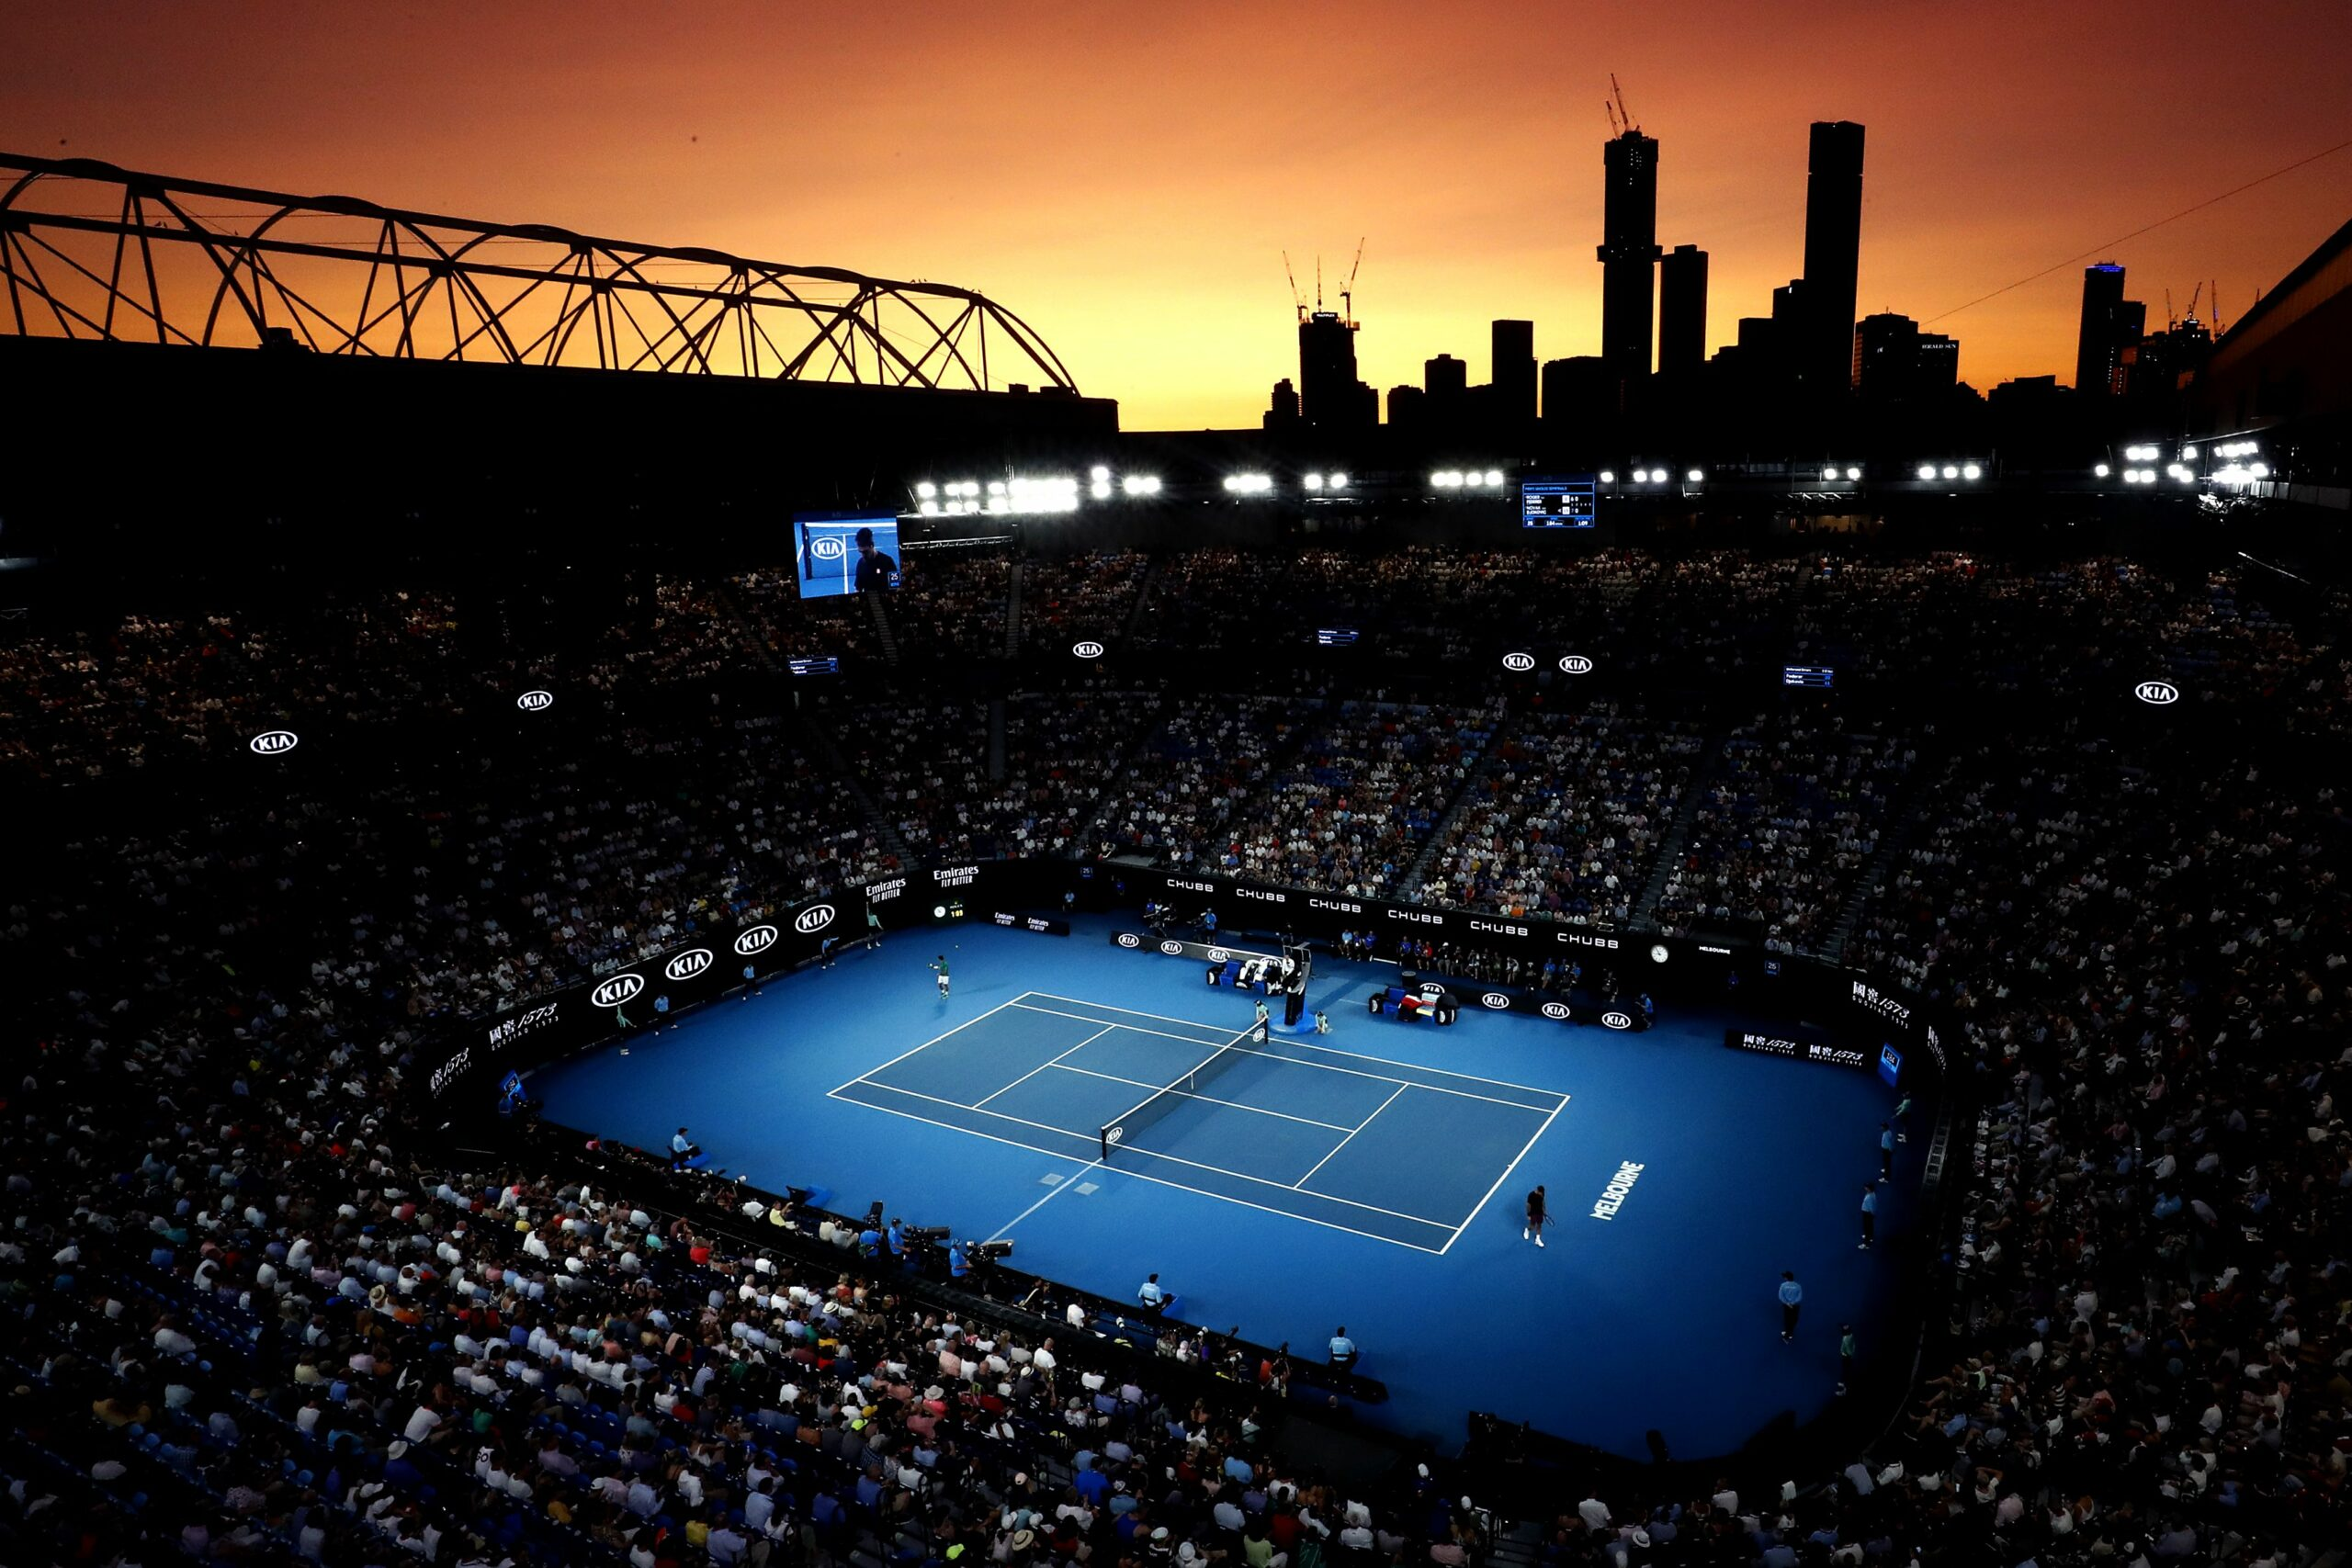 kia tennis competition 2021 Images